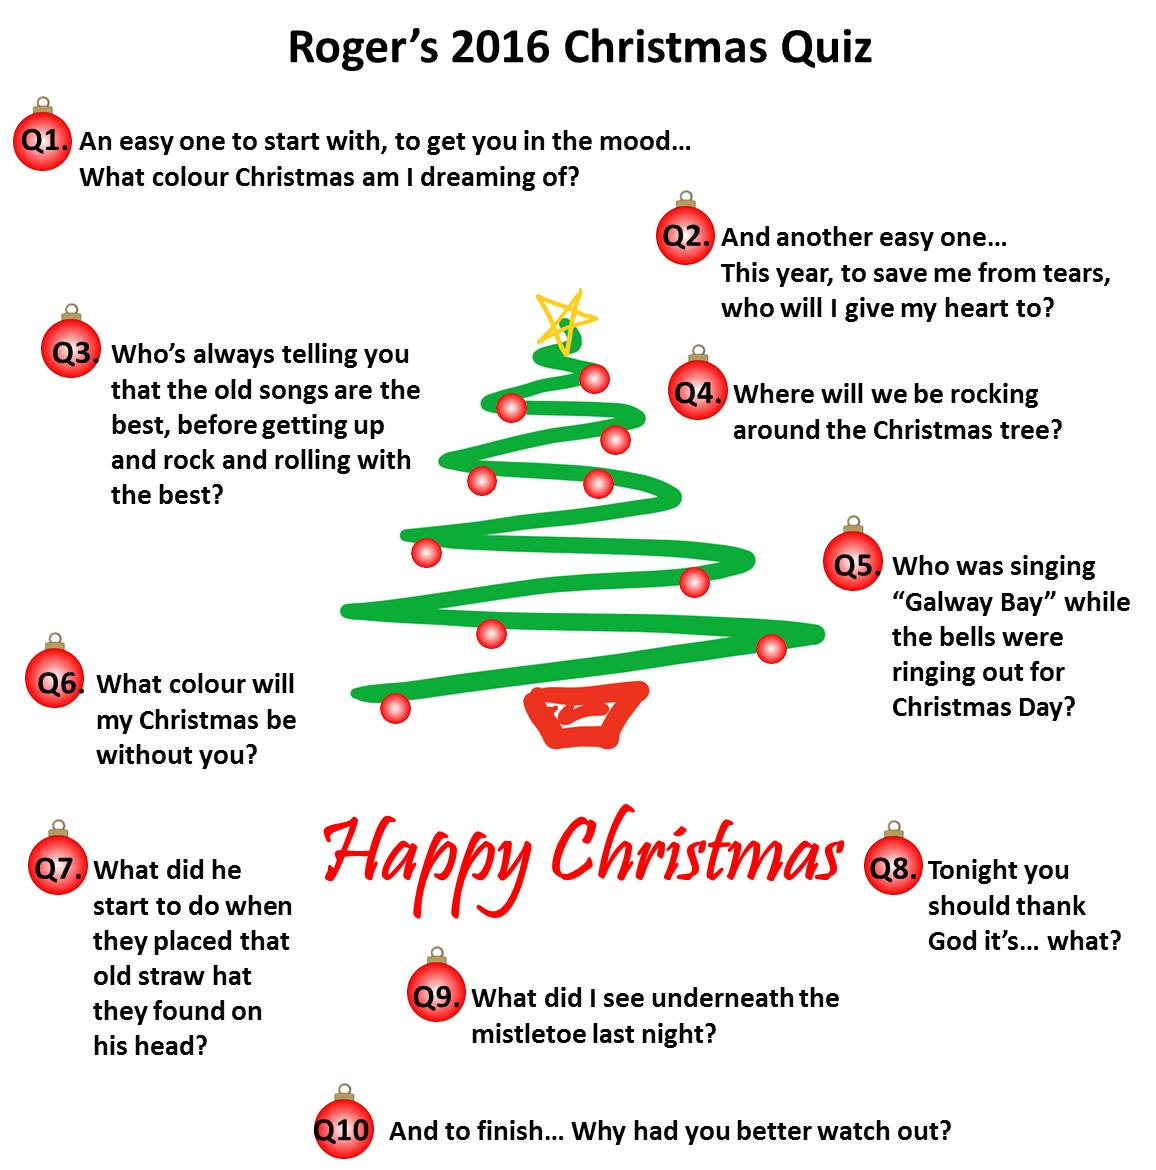 Merry Christmas | RogerLawsonConsulting